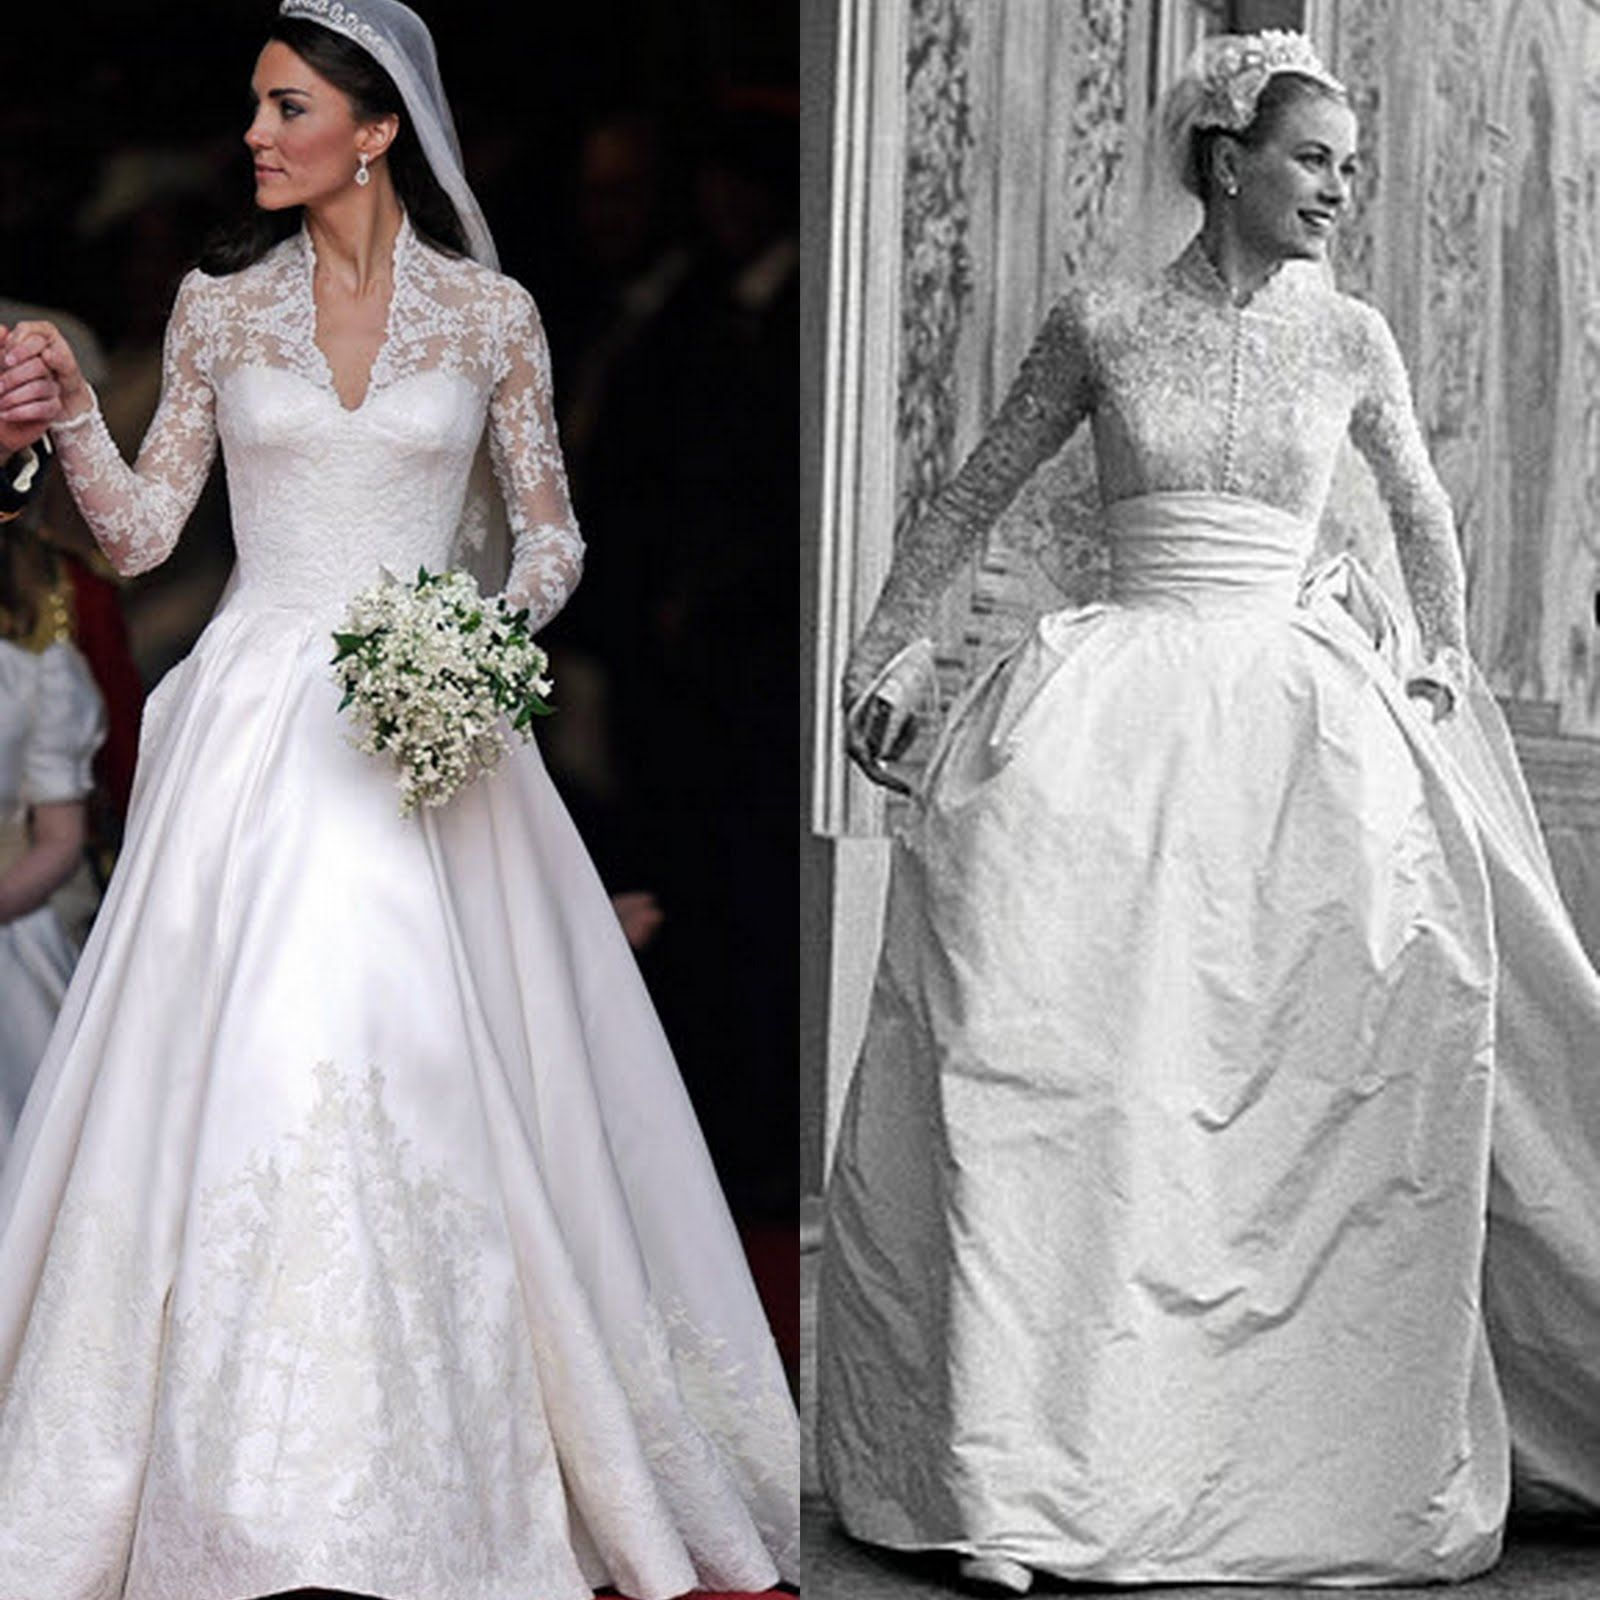 Was Kate Middleton 39 S Dress Inspired By Grace Kelly